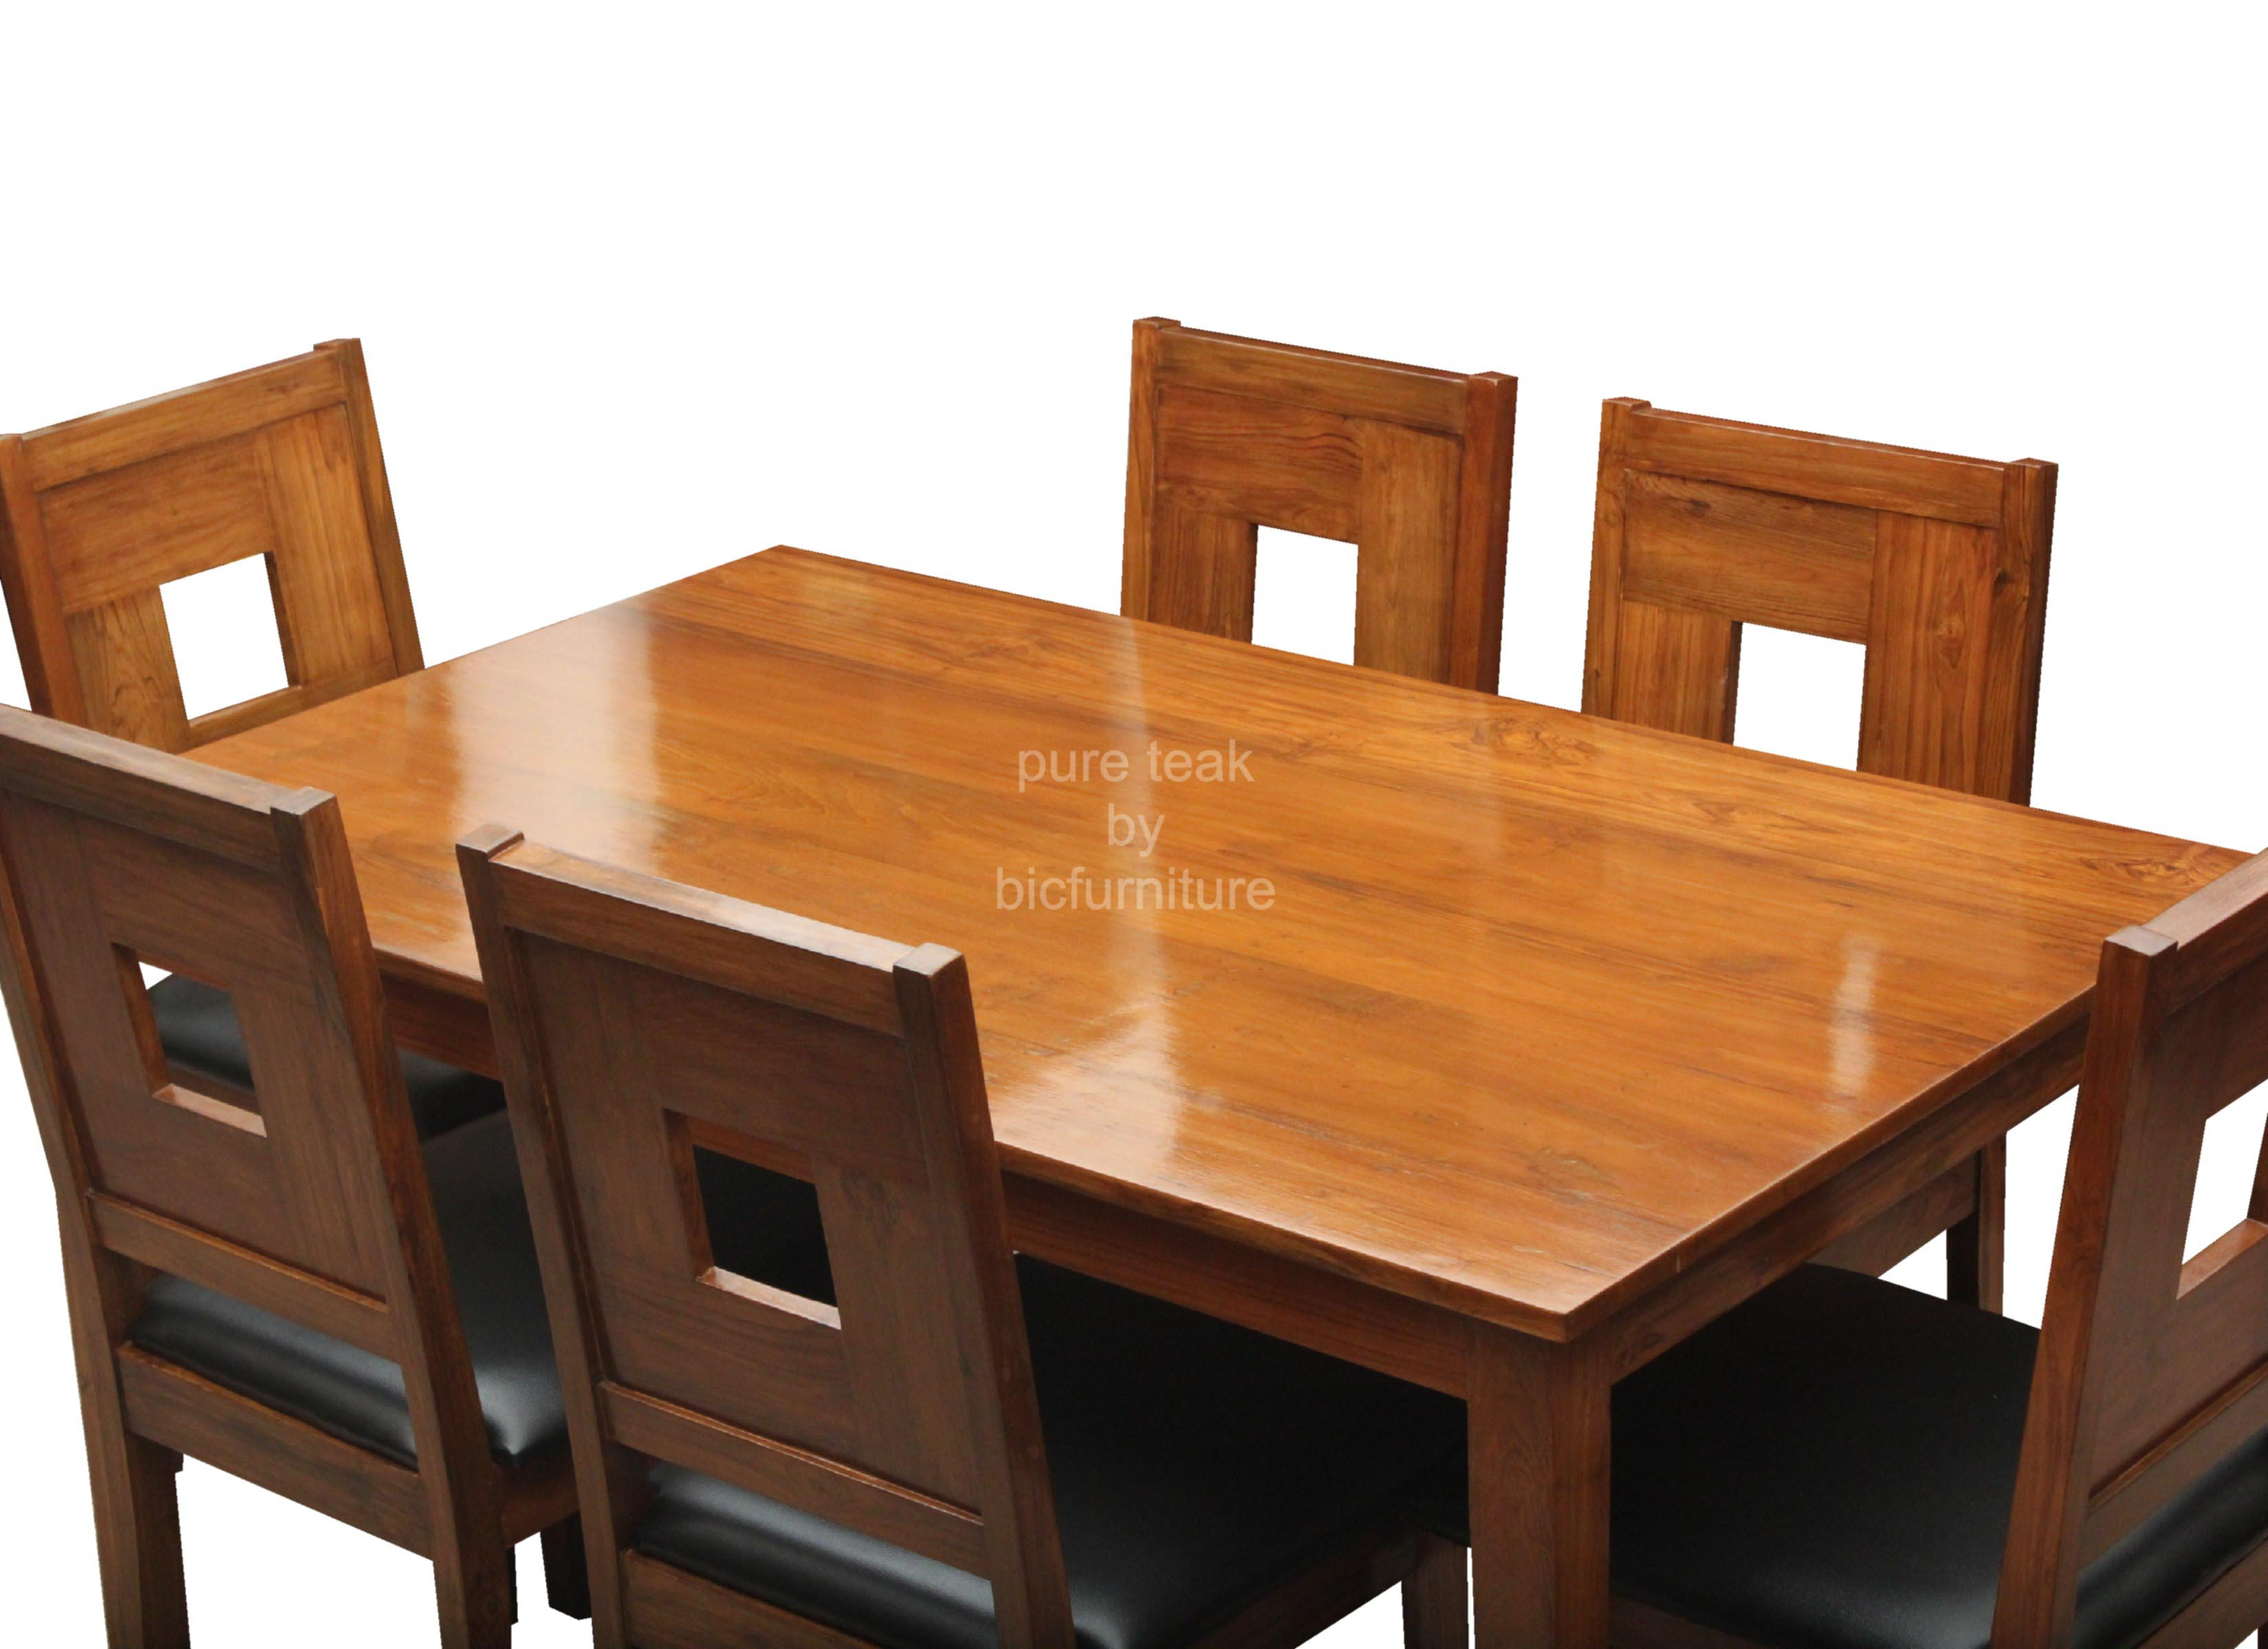 Teak Wood Dining Table With 6 Chairs Stocktonandco : 6seaterteakwooddiningtable from stocktonandco.com size 3300 x 2400 jpeg 360kB